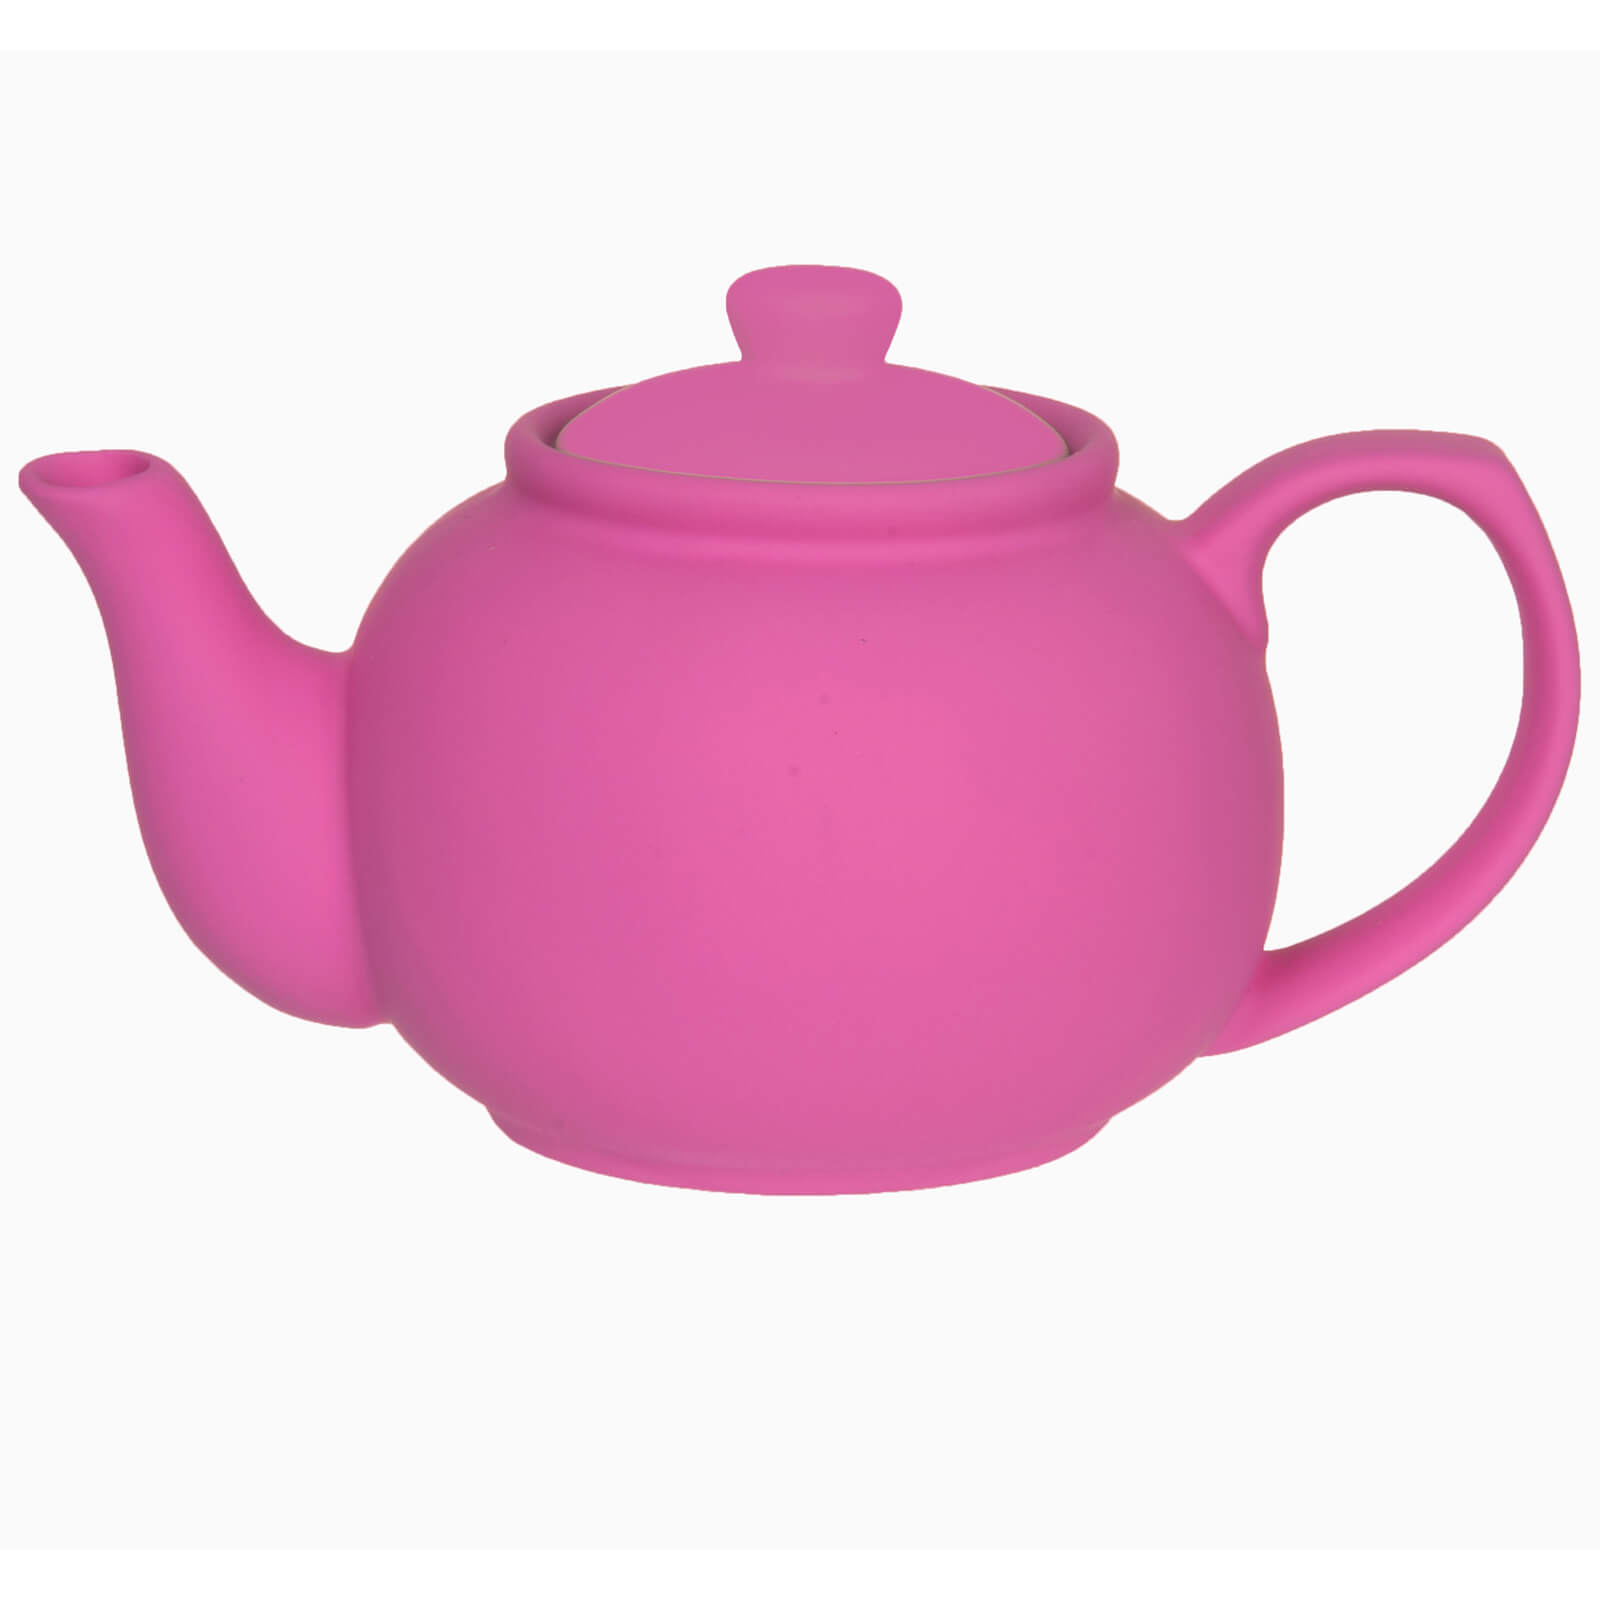 Silk Tea Pot - Neon Pink